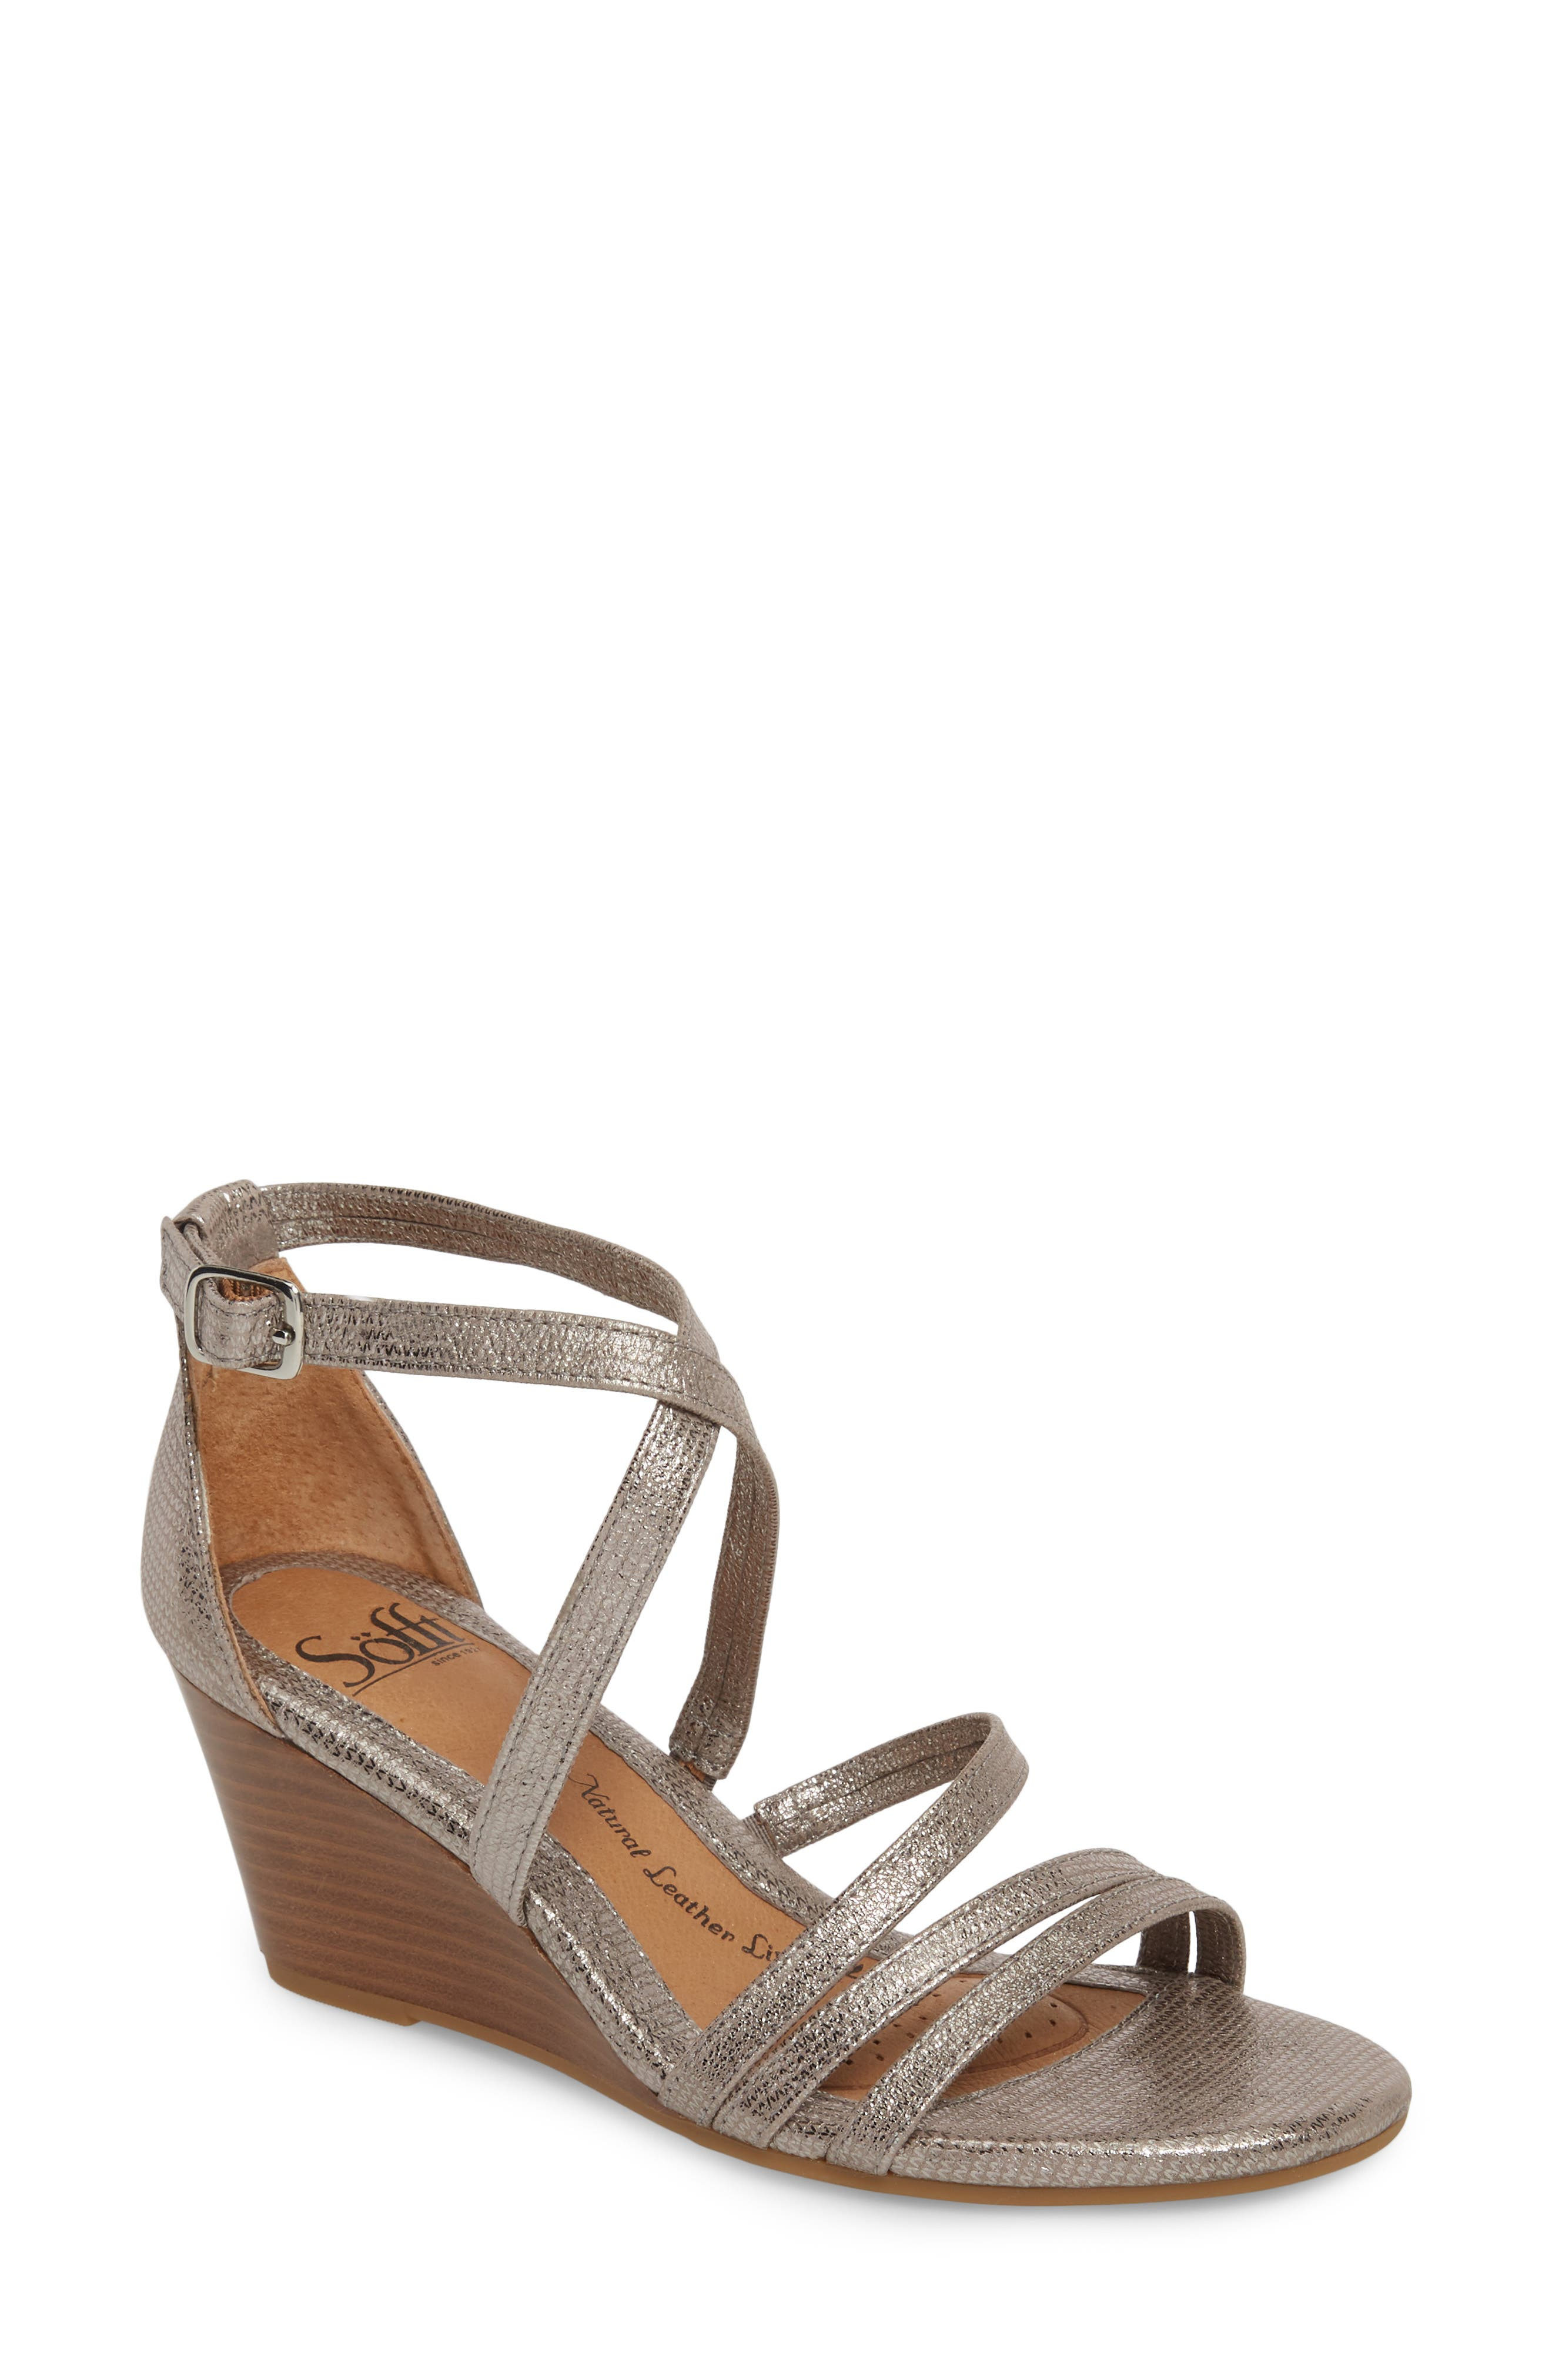 Mecina Wedge Sandal,                             Main thumbnail 1, color,                             SILVER METALLIC LEATHER